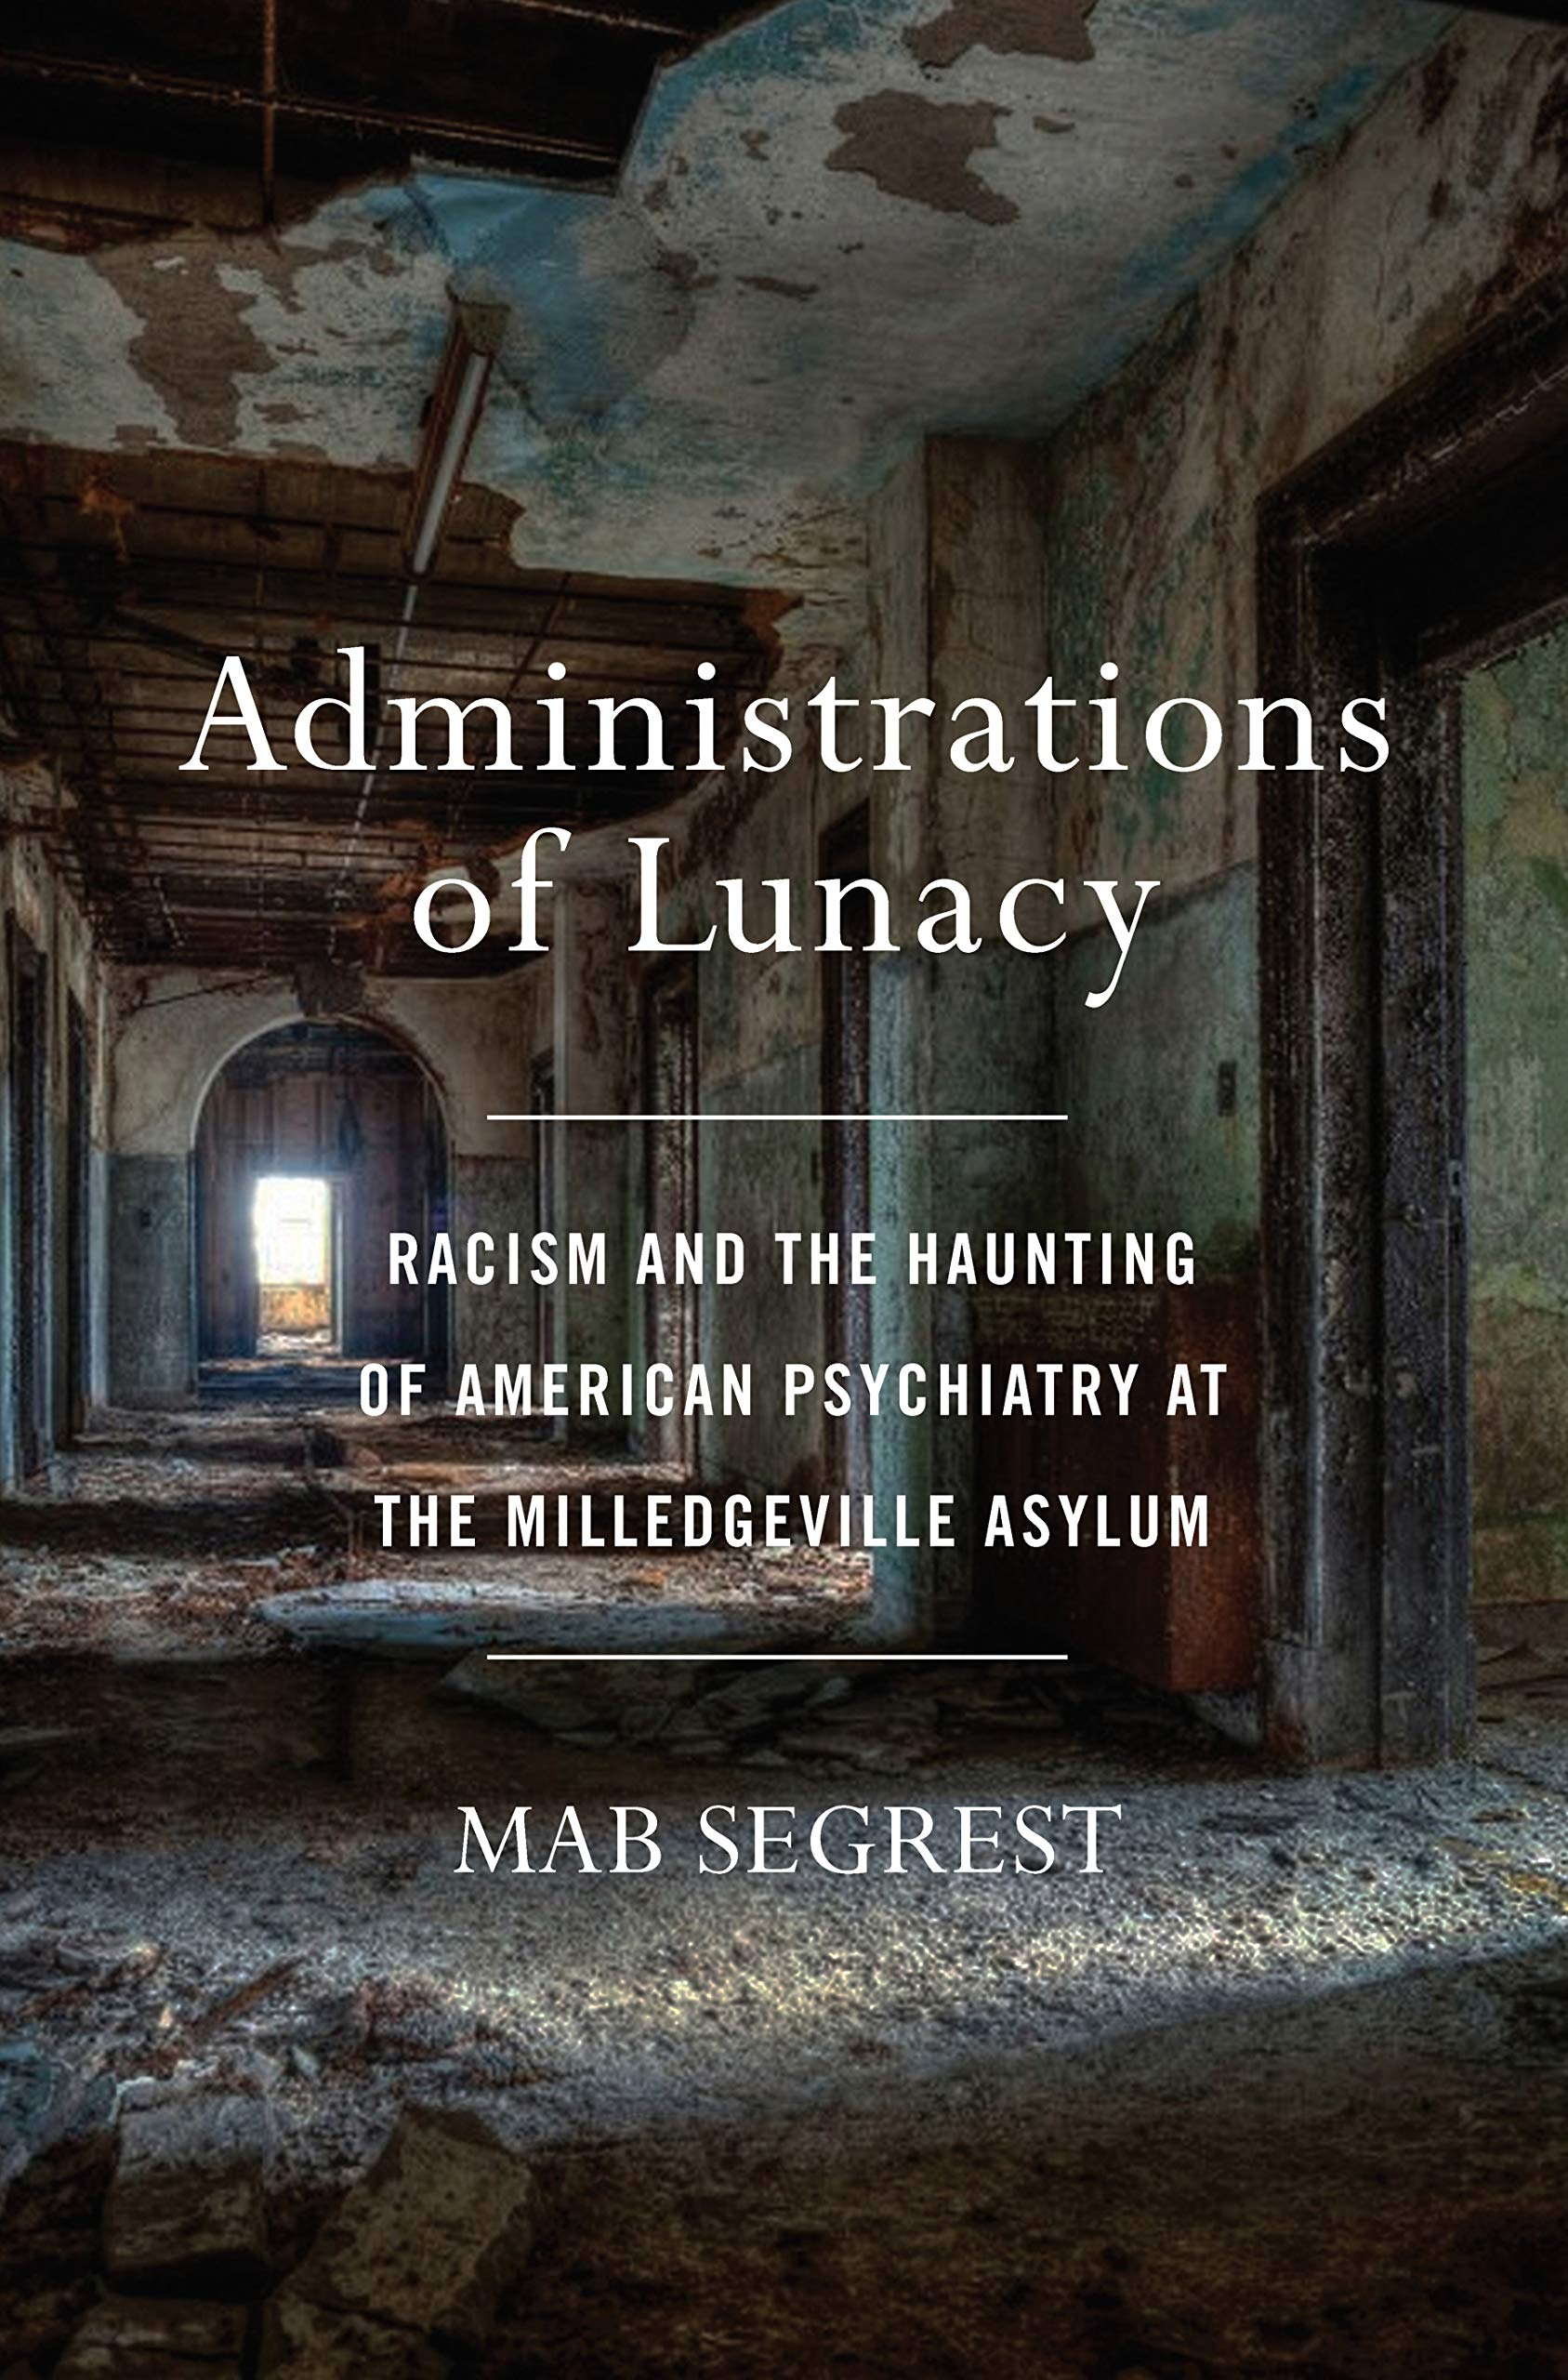 Administrations of Lunacy: Racism and the Haunting of American Psychiatry at the Milledgeville Asylum: Segrest, Mab: 9781620972977: Amazon.com: Books